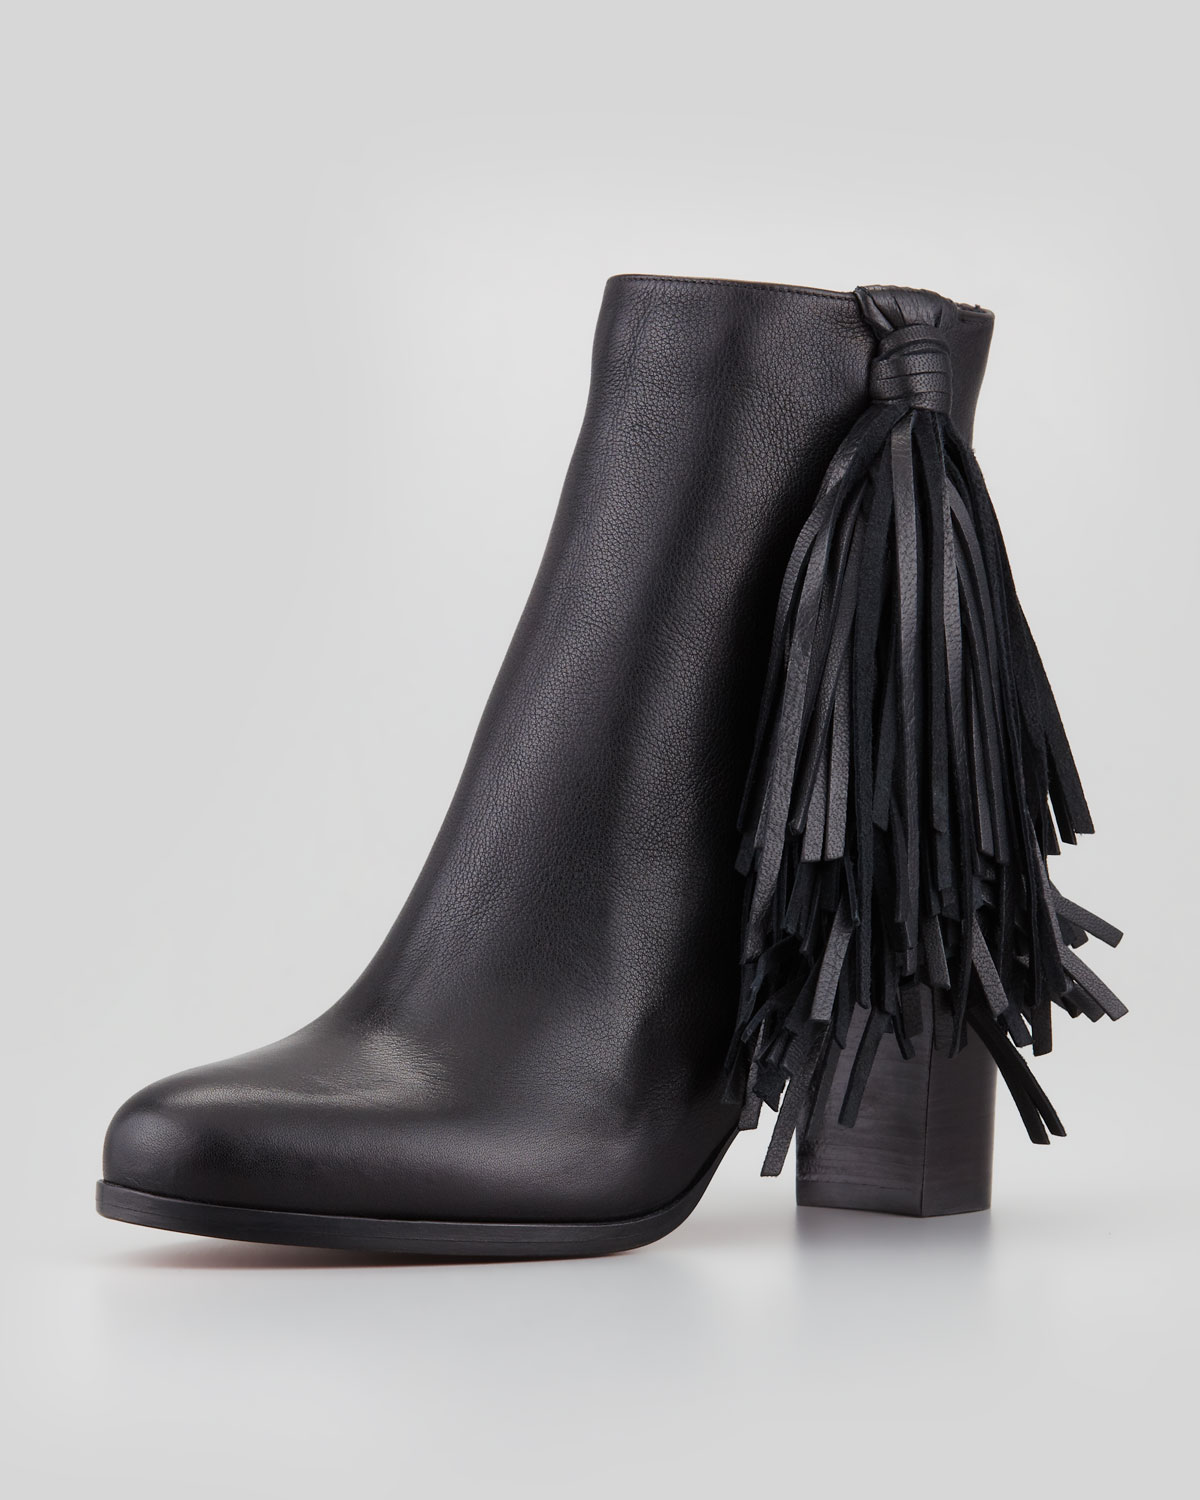 outlet eastbay affordable sale online Christian Louboutin Jimmy Netta Ankle Boots clearance comfortable sale get authentic sale cheap price GpKiMhUde6